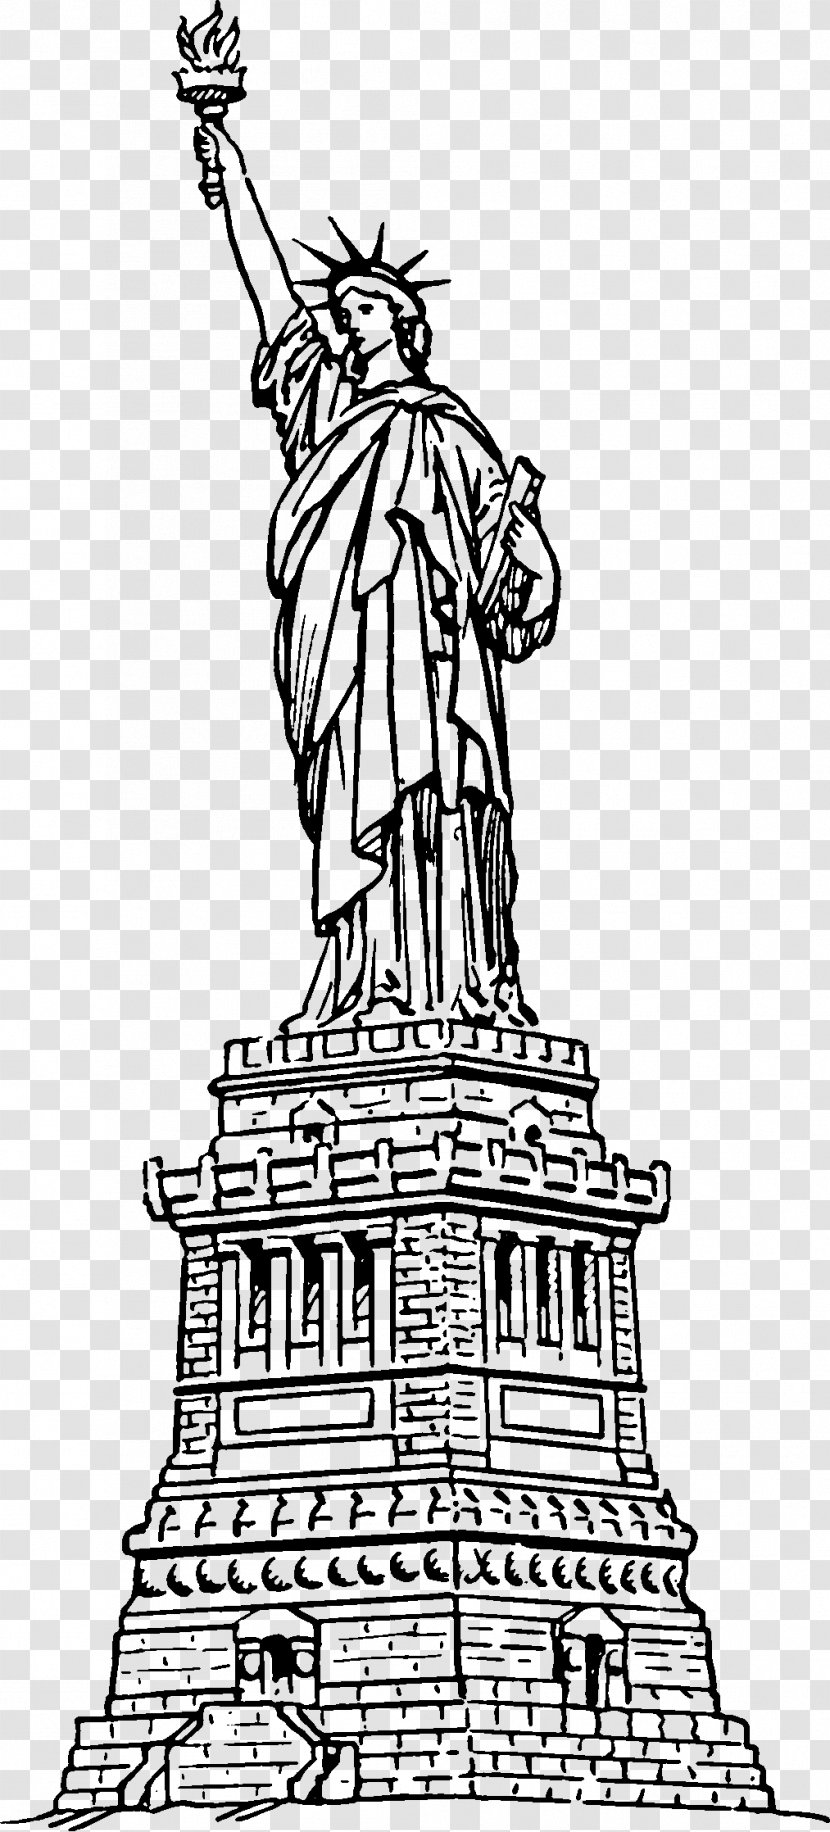 Statue Of Liberty Coloring Book - Monochrome Transparent PNG